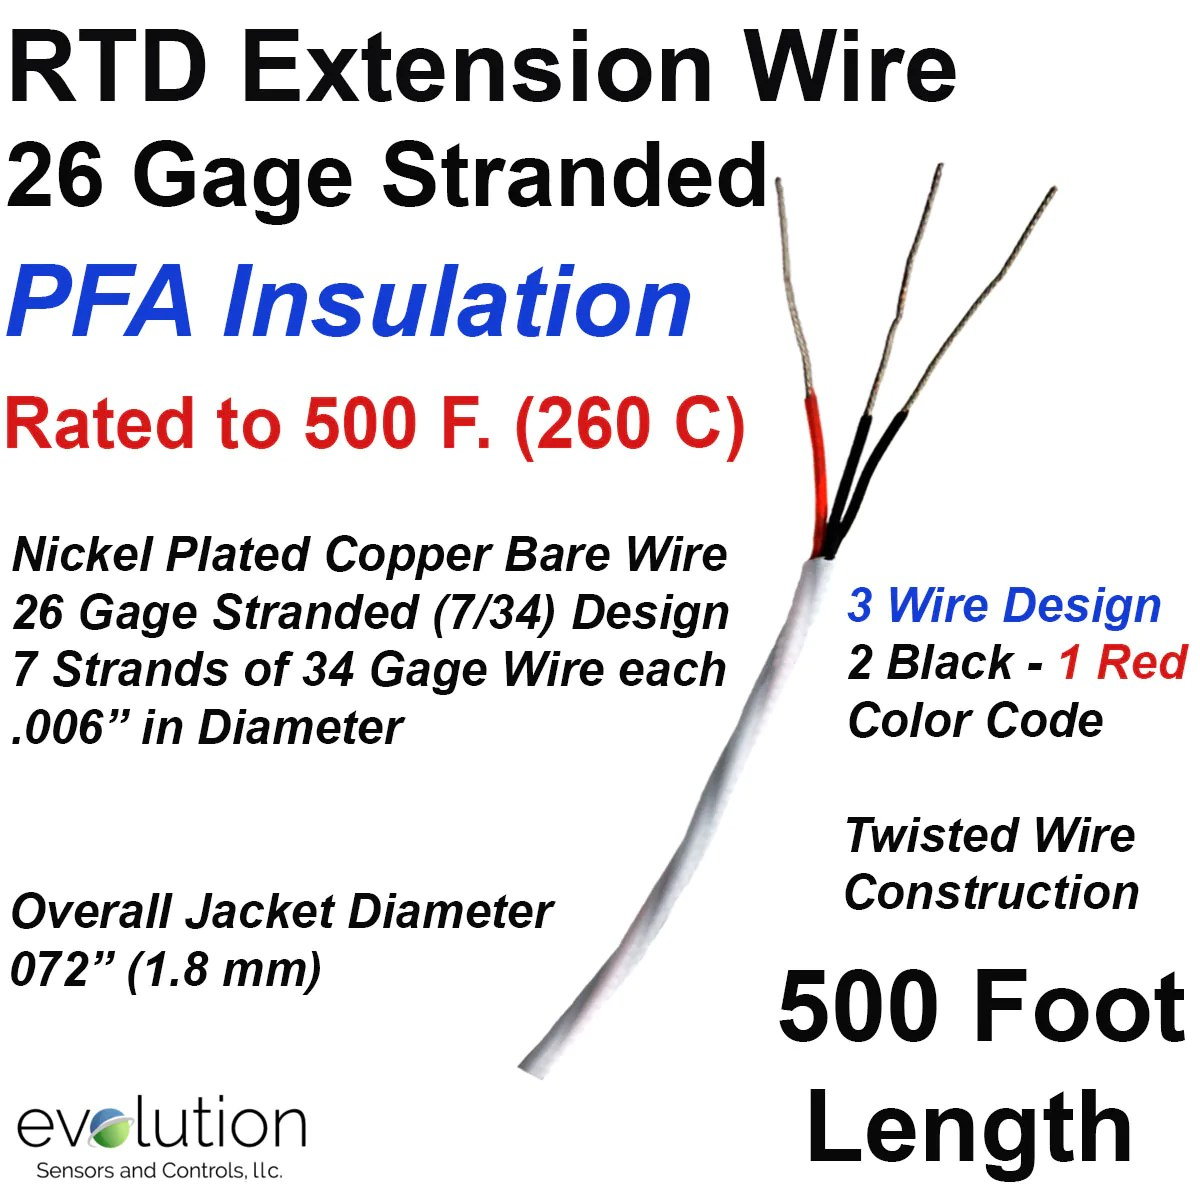 hight resolution of rtd extension wire 500 foot length 26 gage stranded 3 wire design type j thermocouple wire color rtd wiring color code